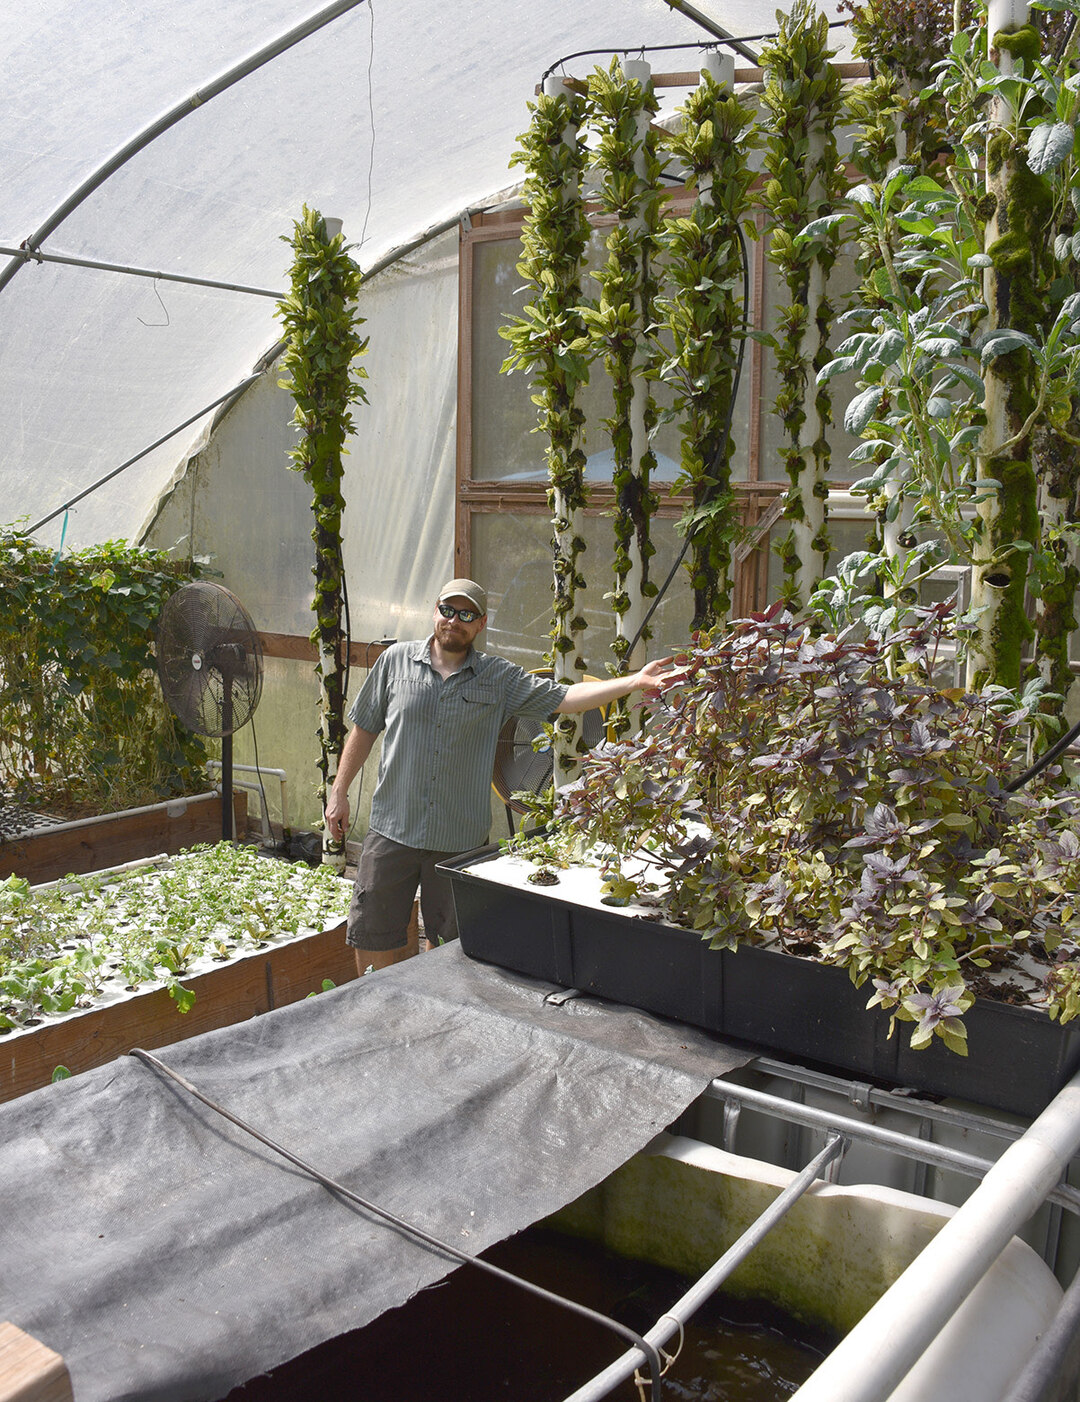 Page 38 of Small Farm Spotlight: the basics of aquaponics with Billy's Botanicals